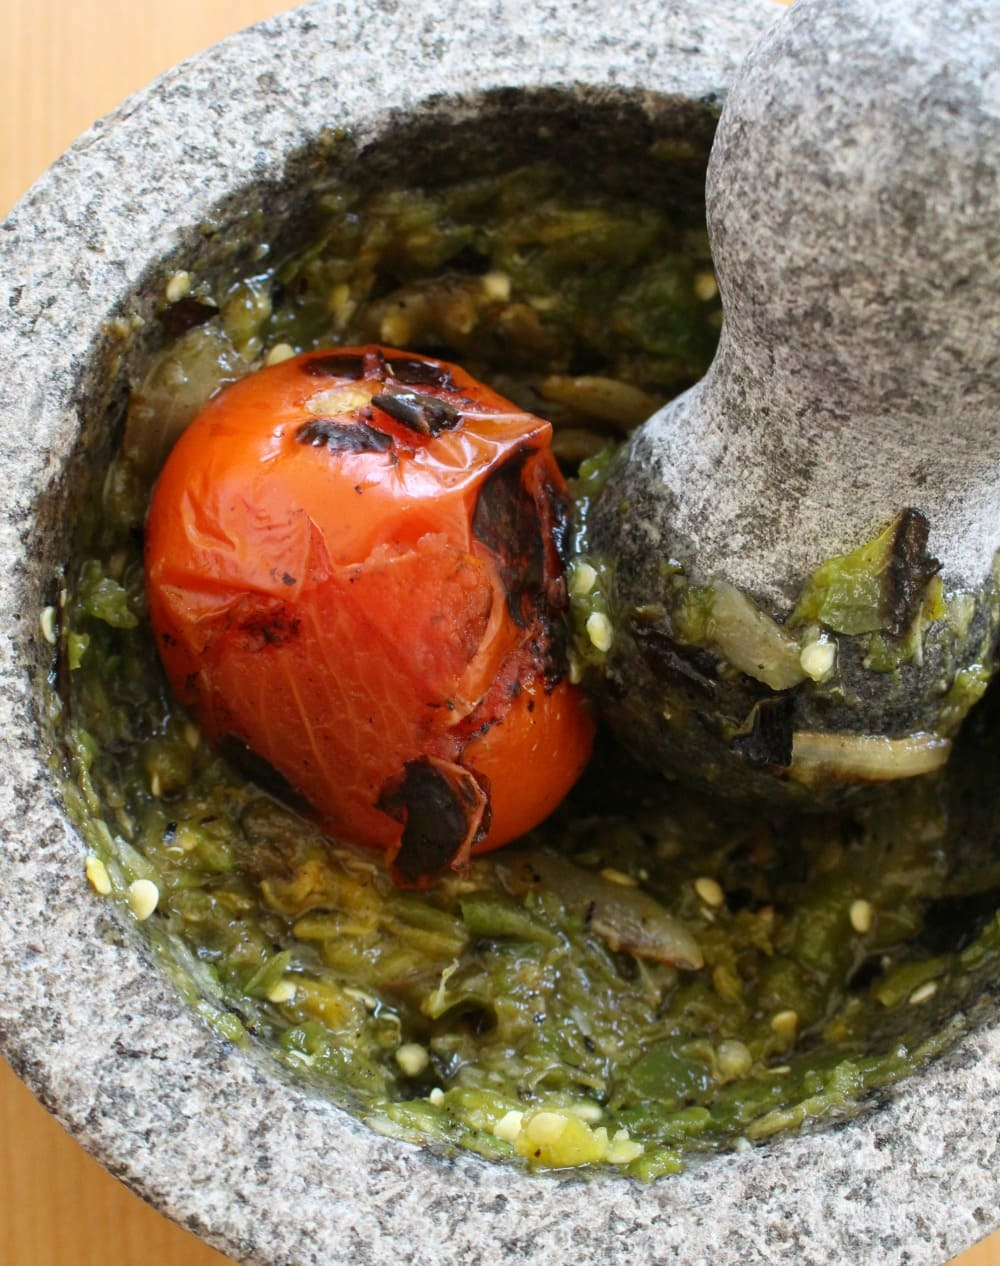 Roasted tomato in molcajete with the pestle and mashed jalapeno.